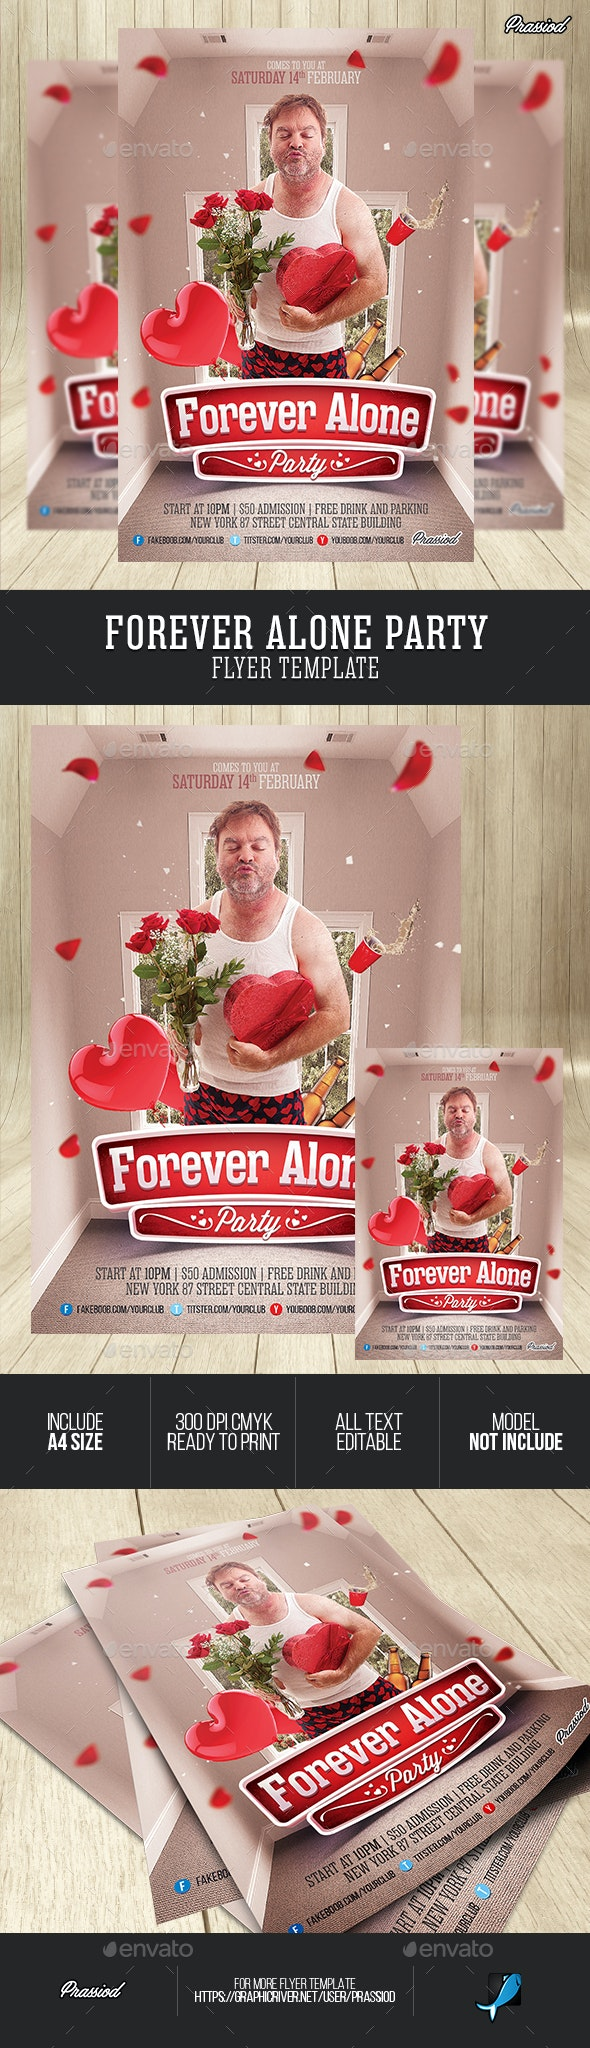 Forever Alone Party Flyer Template - Clubs & Parties Events